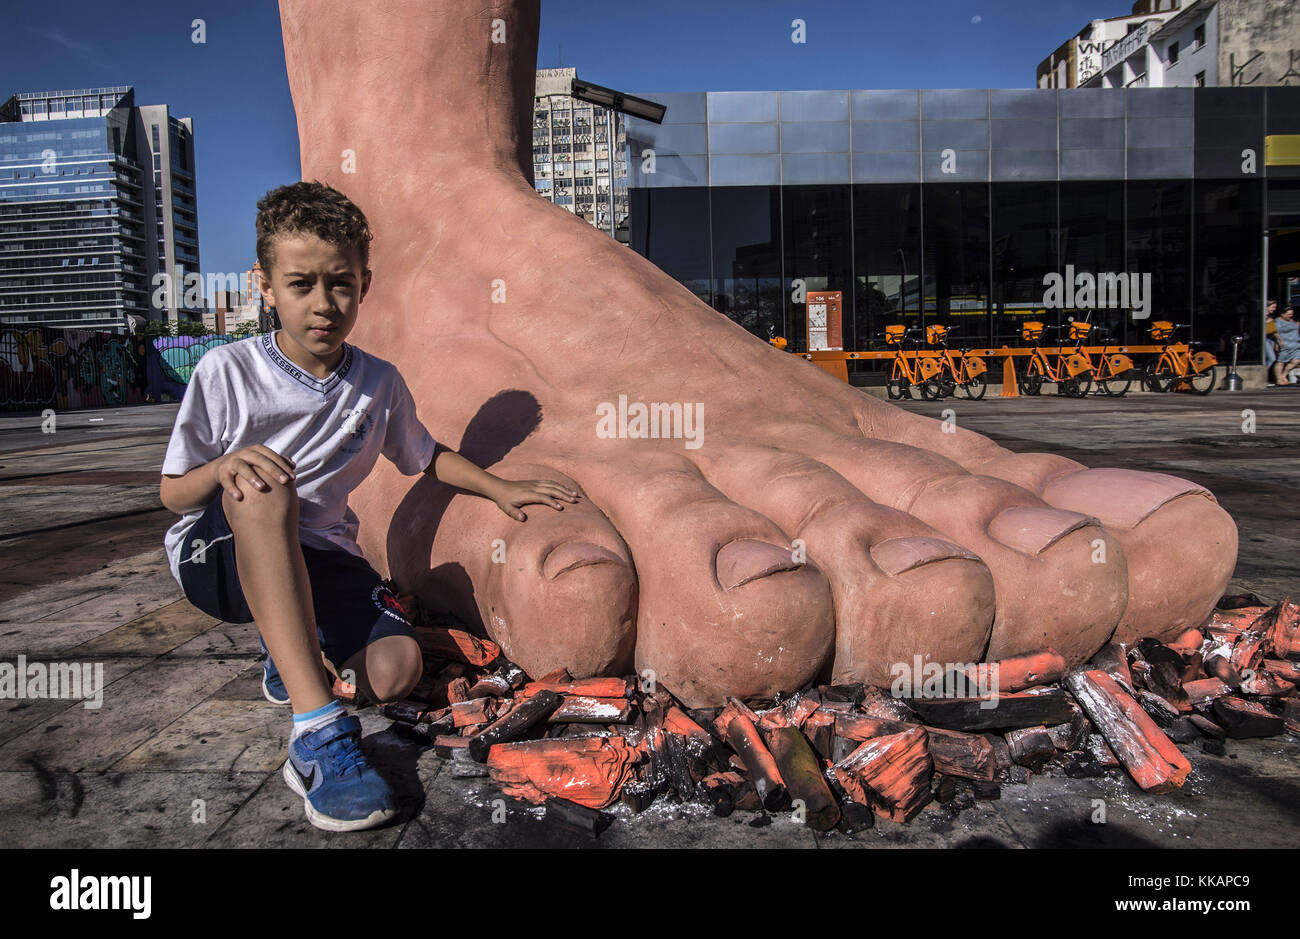 Sao Paulo, Brazil. 30th Nov, 2017. Sculpture of a foot, by the artist Eduardo Srur, installed in the Largo da Batata. - Stock Image